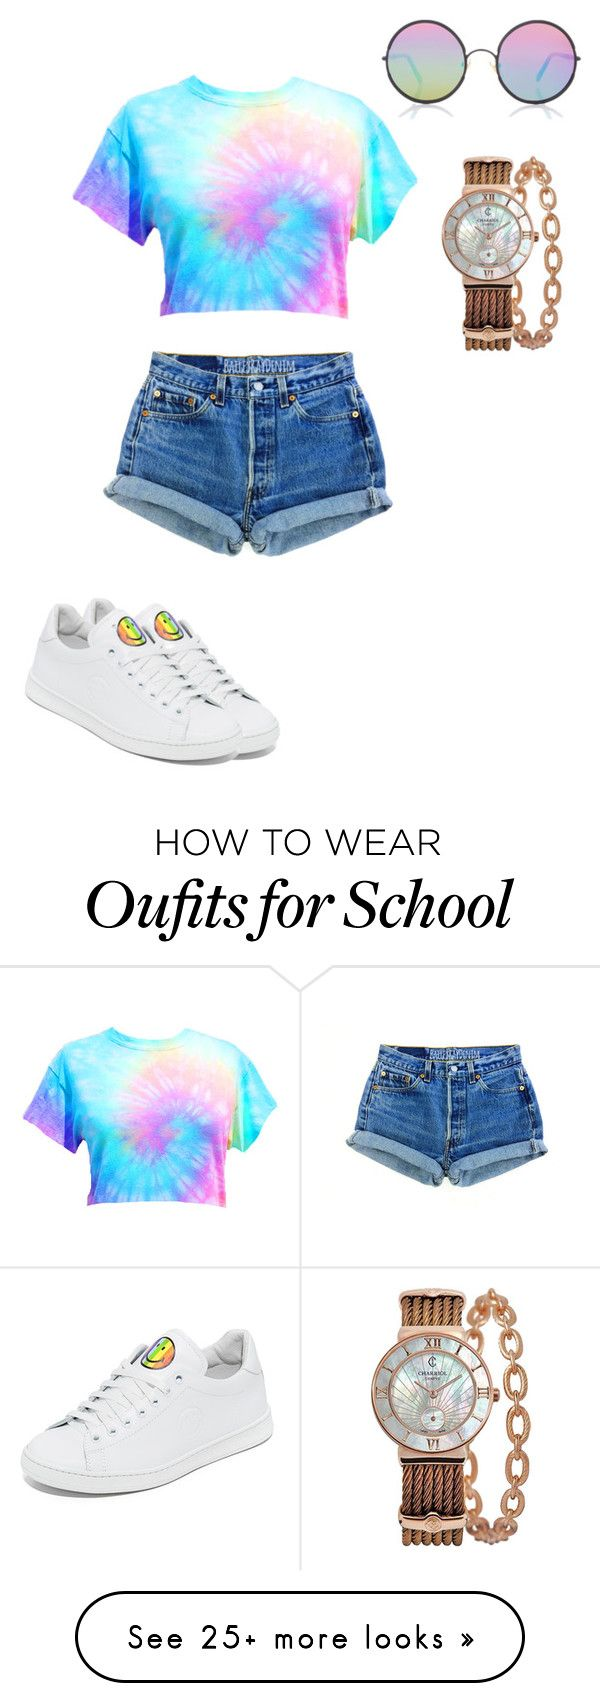 """Untitled #14"" by laseybae on Polyvore featuring Sunday Somewhere, Joshua's, Charriol and pride"